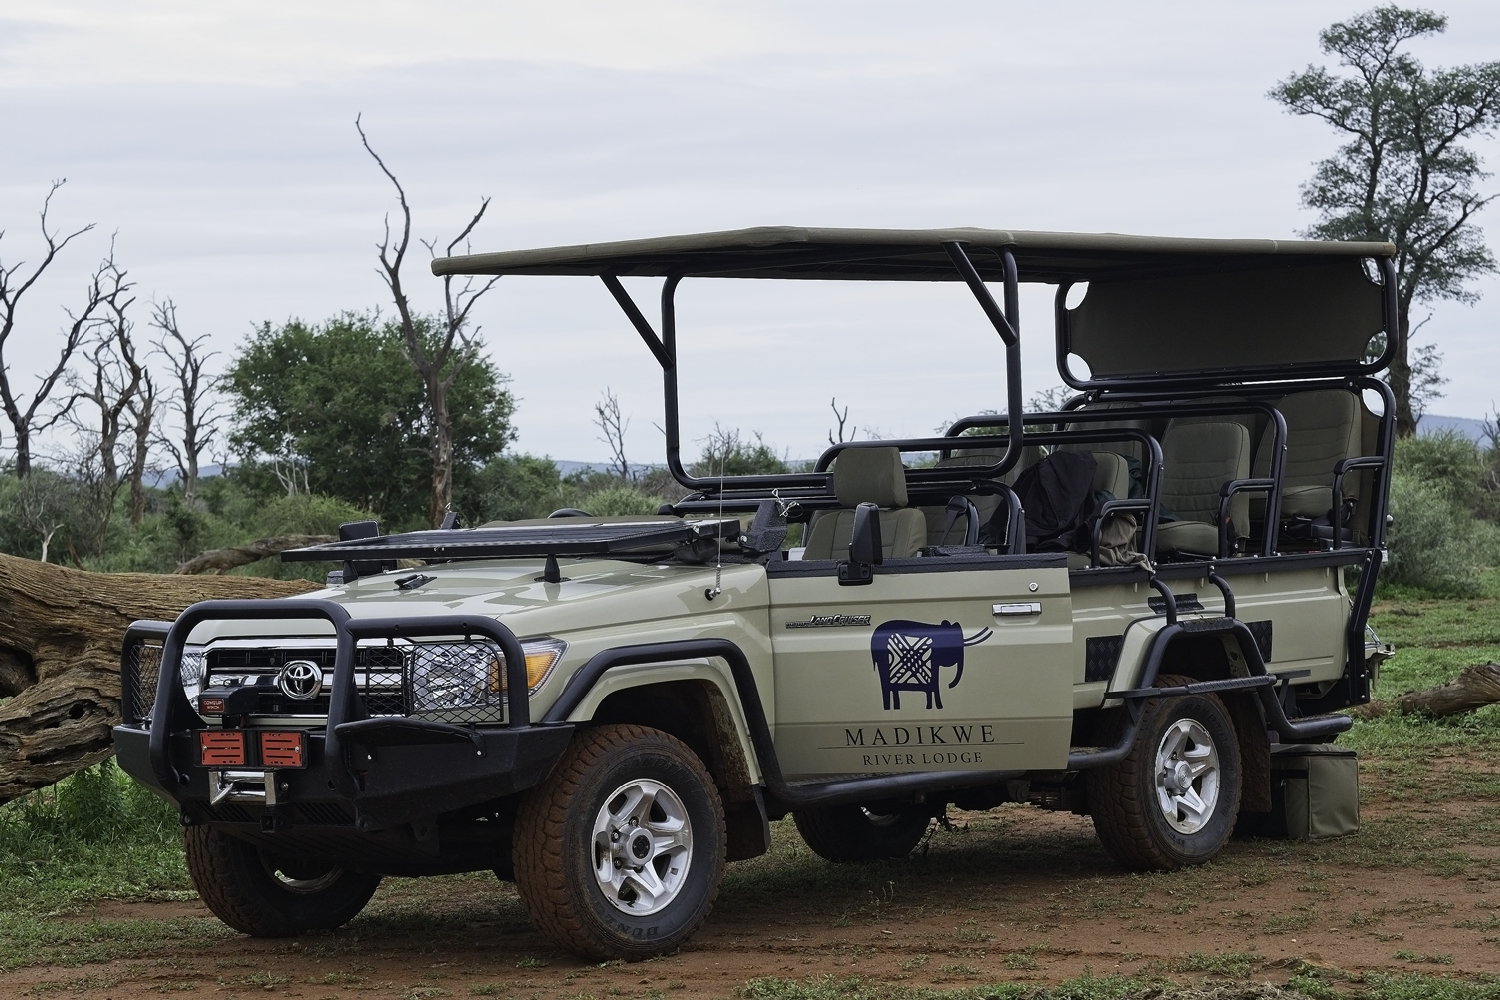 Typical game viewing vehicle - ours at Madikwe stopped for sundowners at a safe spot in the bush